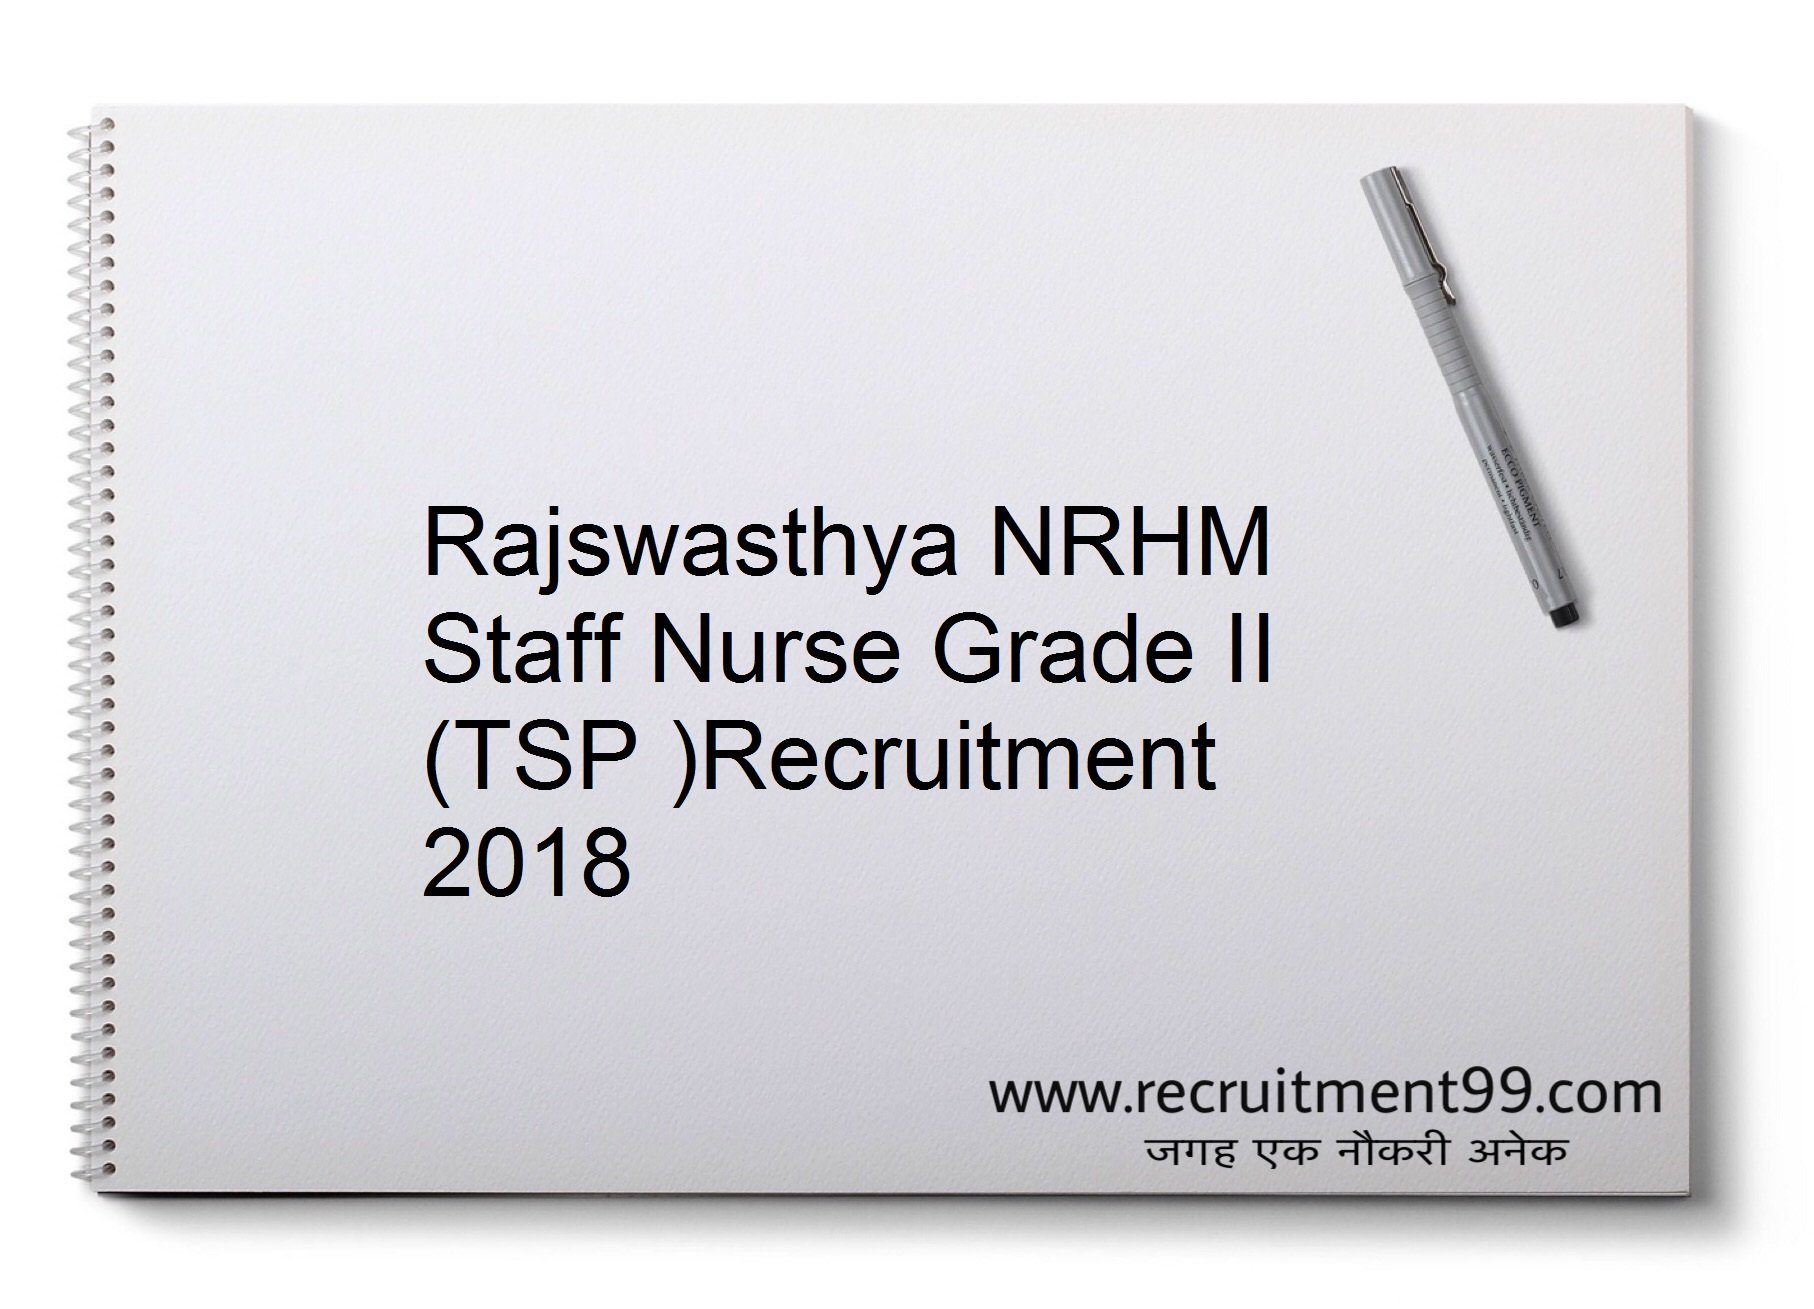 Rajswasthya NRHM Staff Nurse Grade II Recruitment, Merit List & Result2018